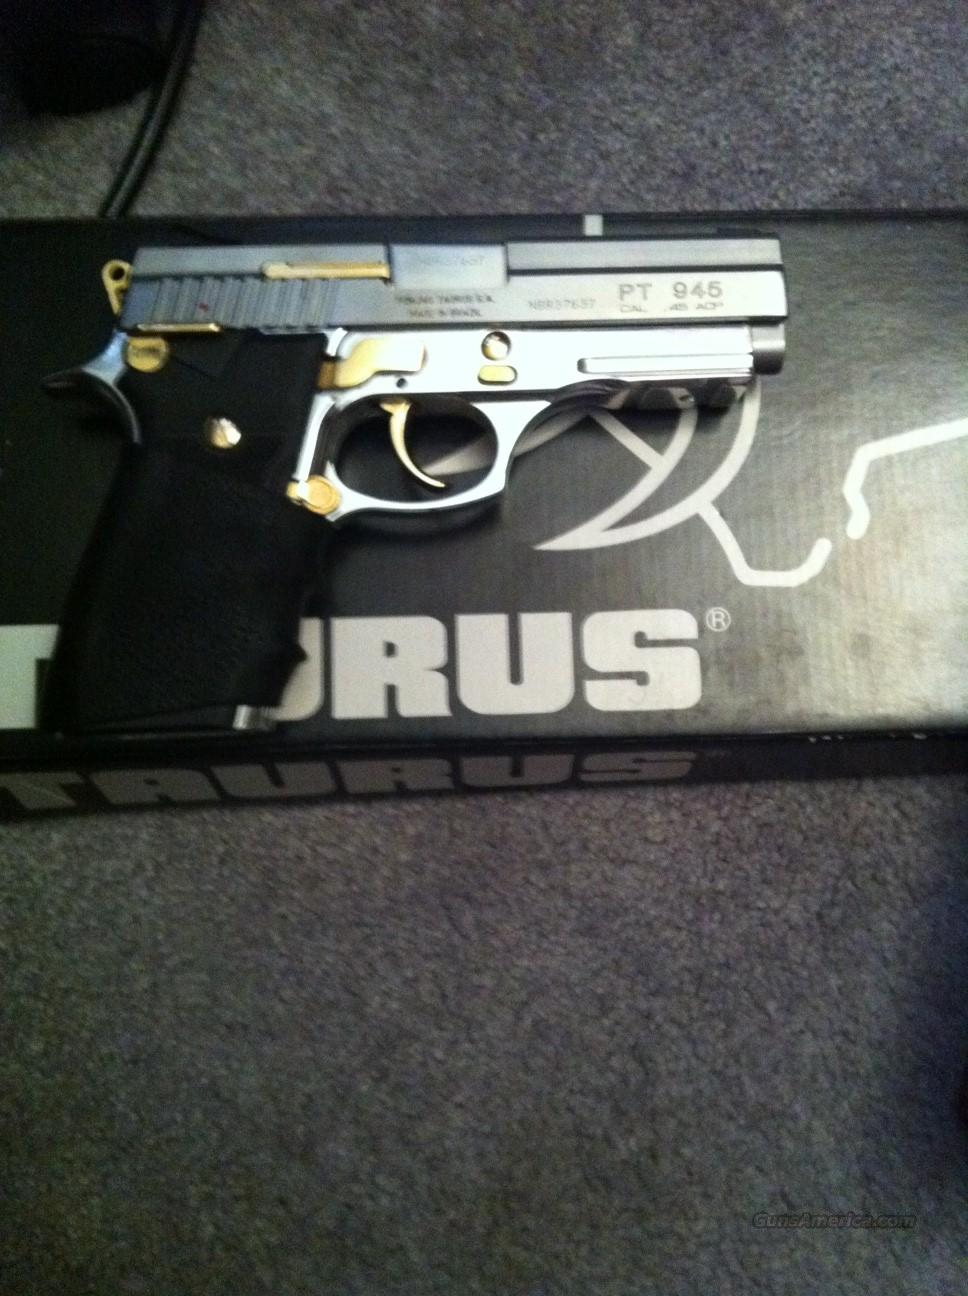 TAURUS PT945  45 ACP WITH GOLD ACCENTS AND MOTHER OF PEARL GRIPS! AMMO  INCLUDED!